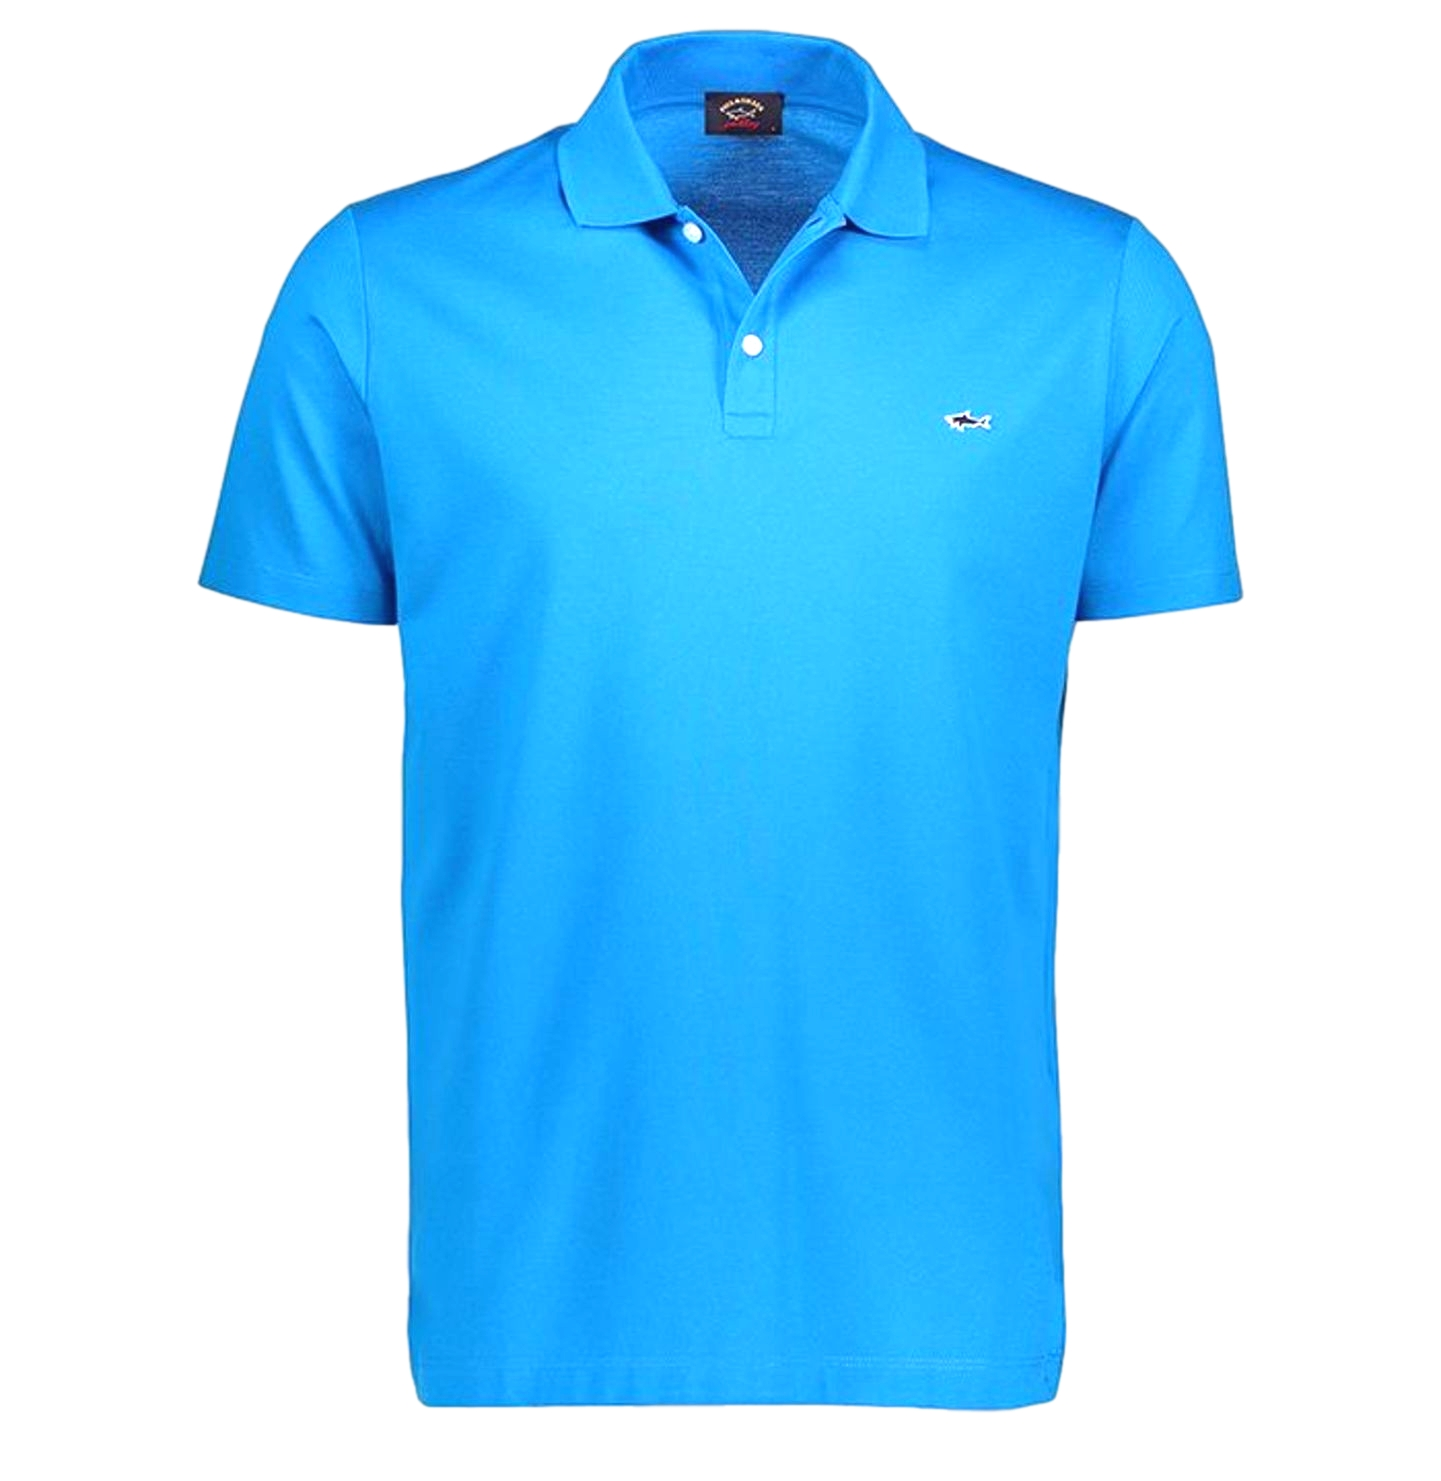 PAUL SHARK Polo cop1013 in cotone organico pique con shark badge colore azzurro